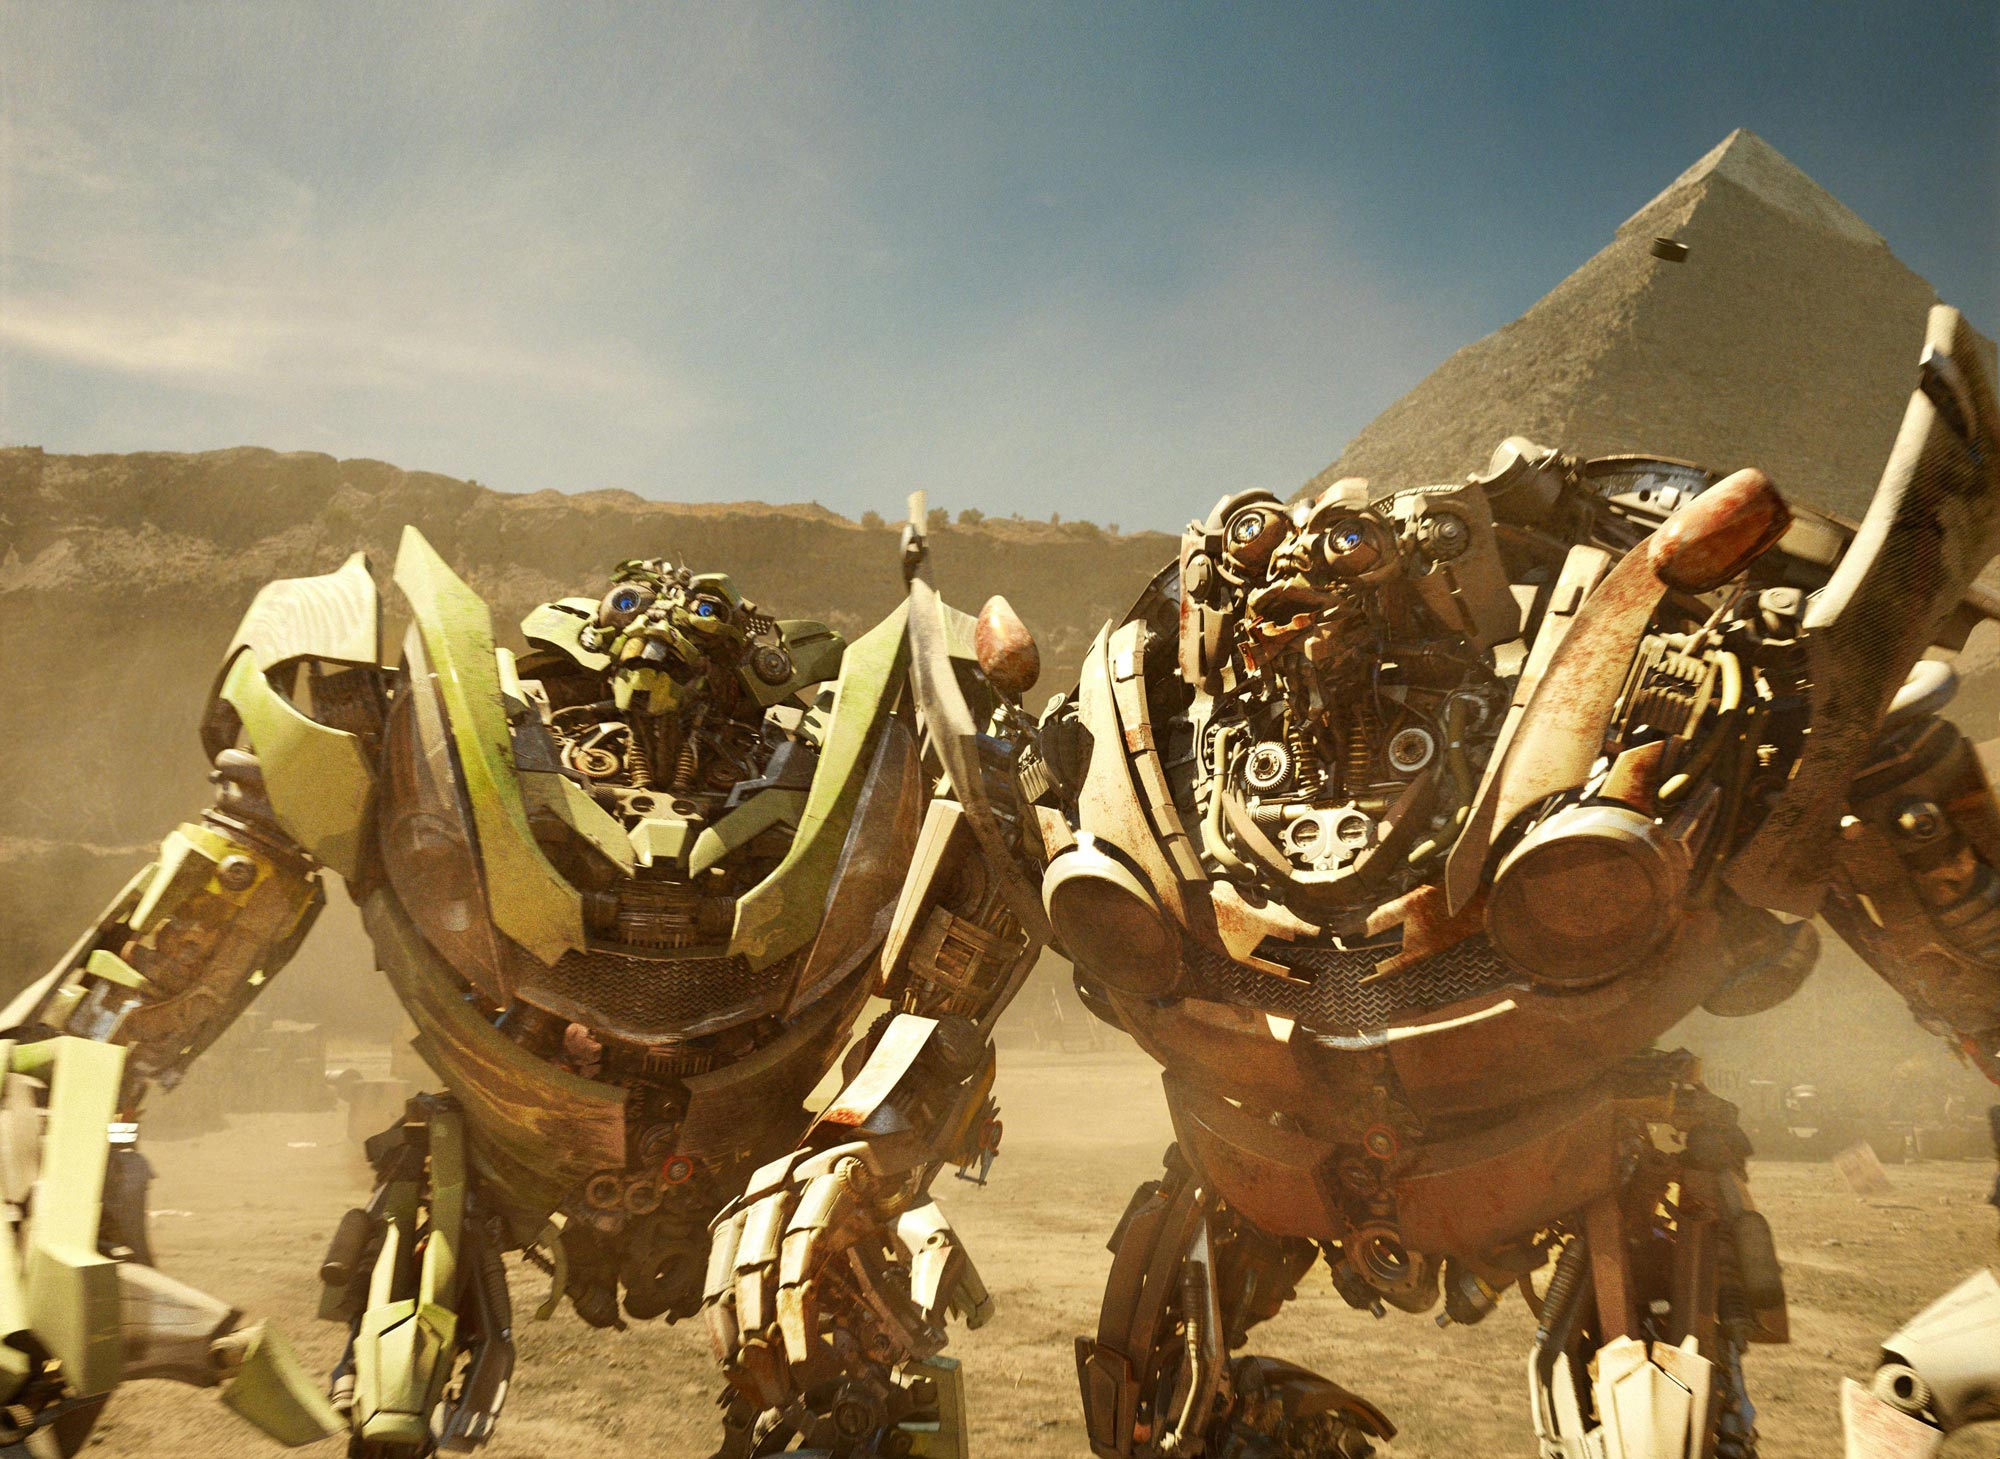 Bad Movies: Transformers: Revenge Of The Fallen